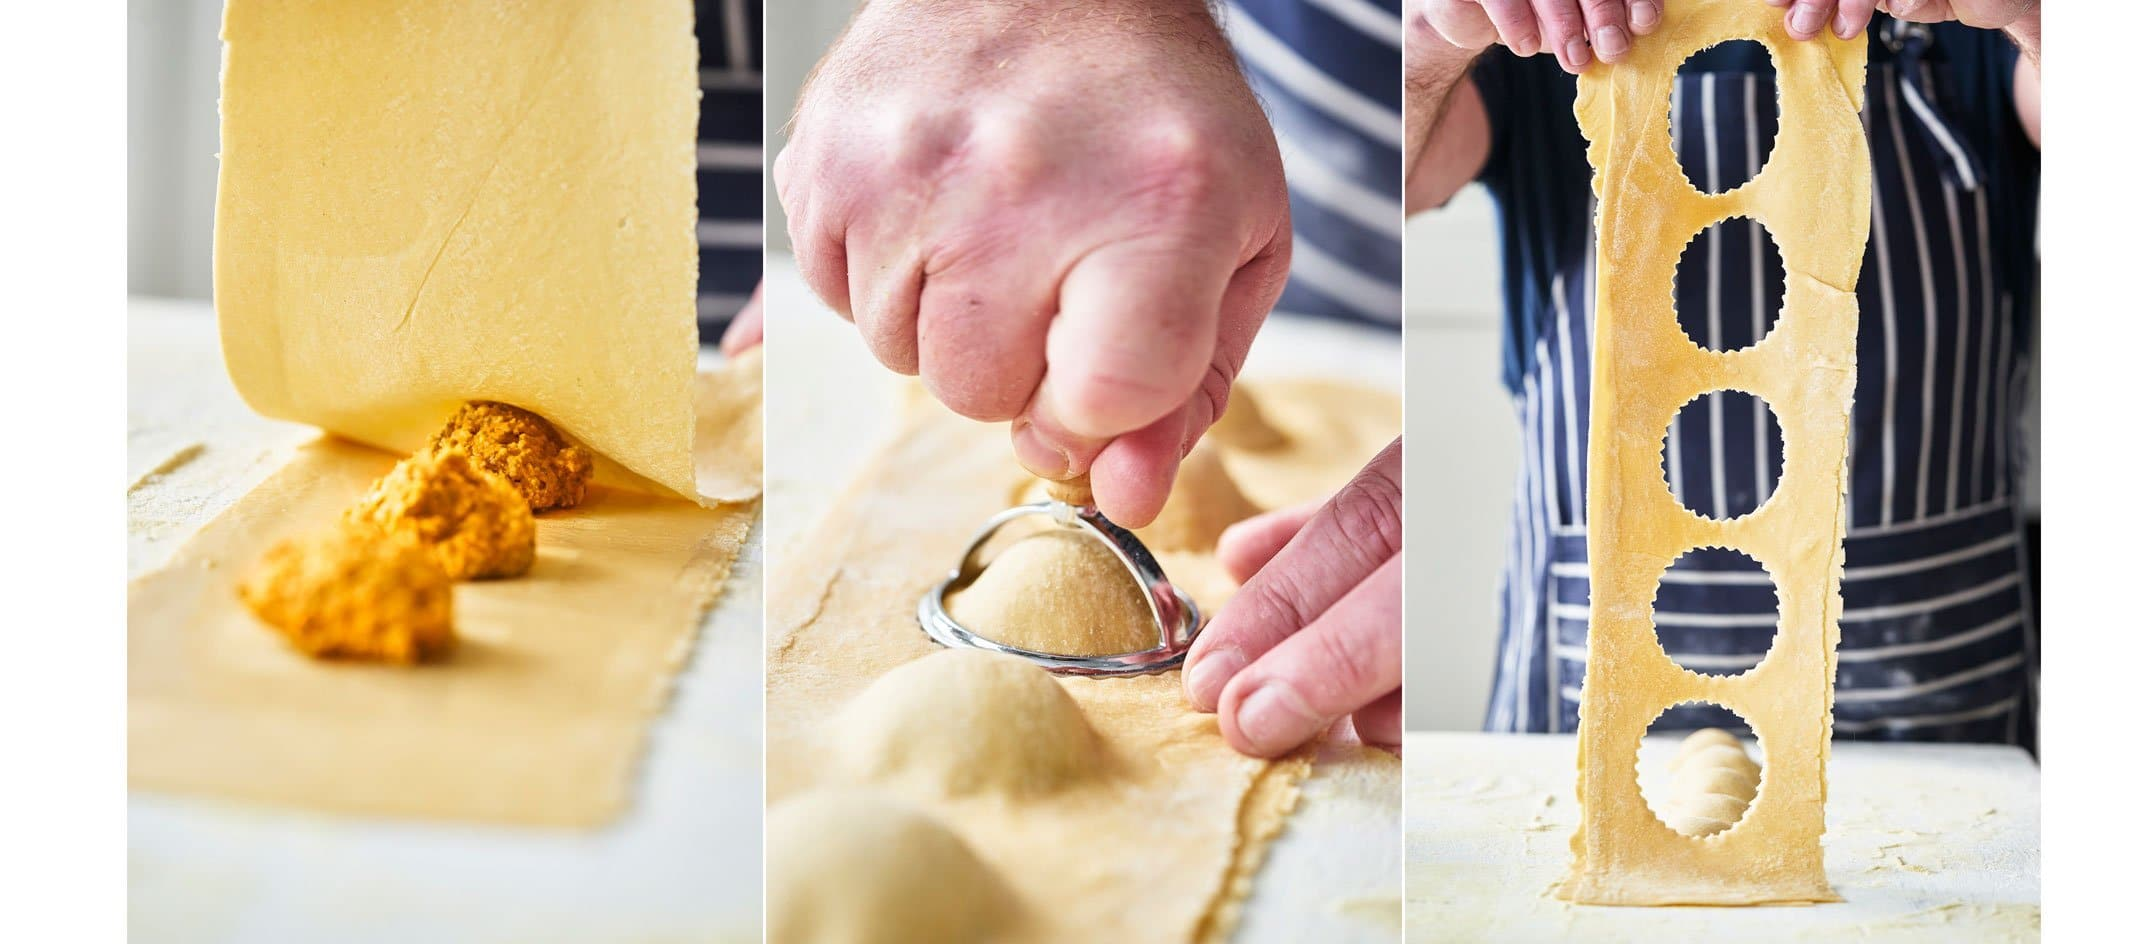 The Making of Butternut Ravioli by Udo Reichelt-Schaurer - Part 2